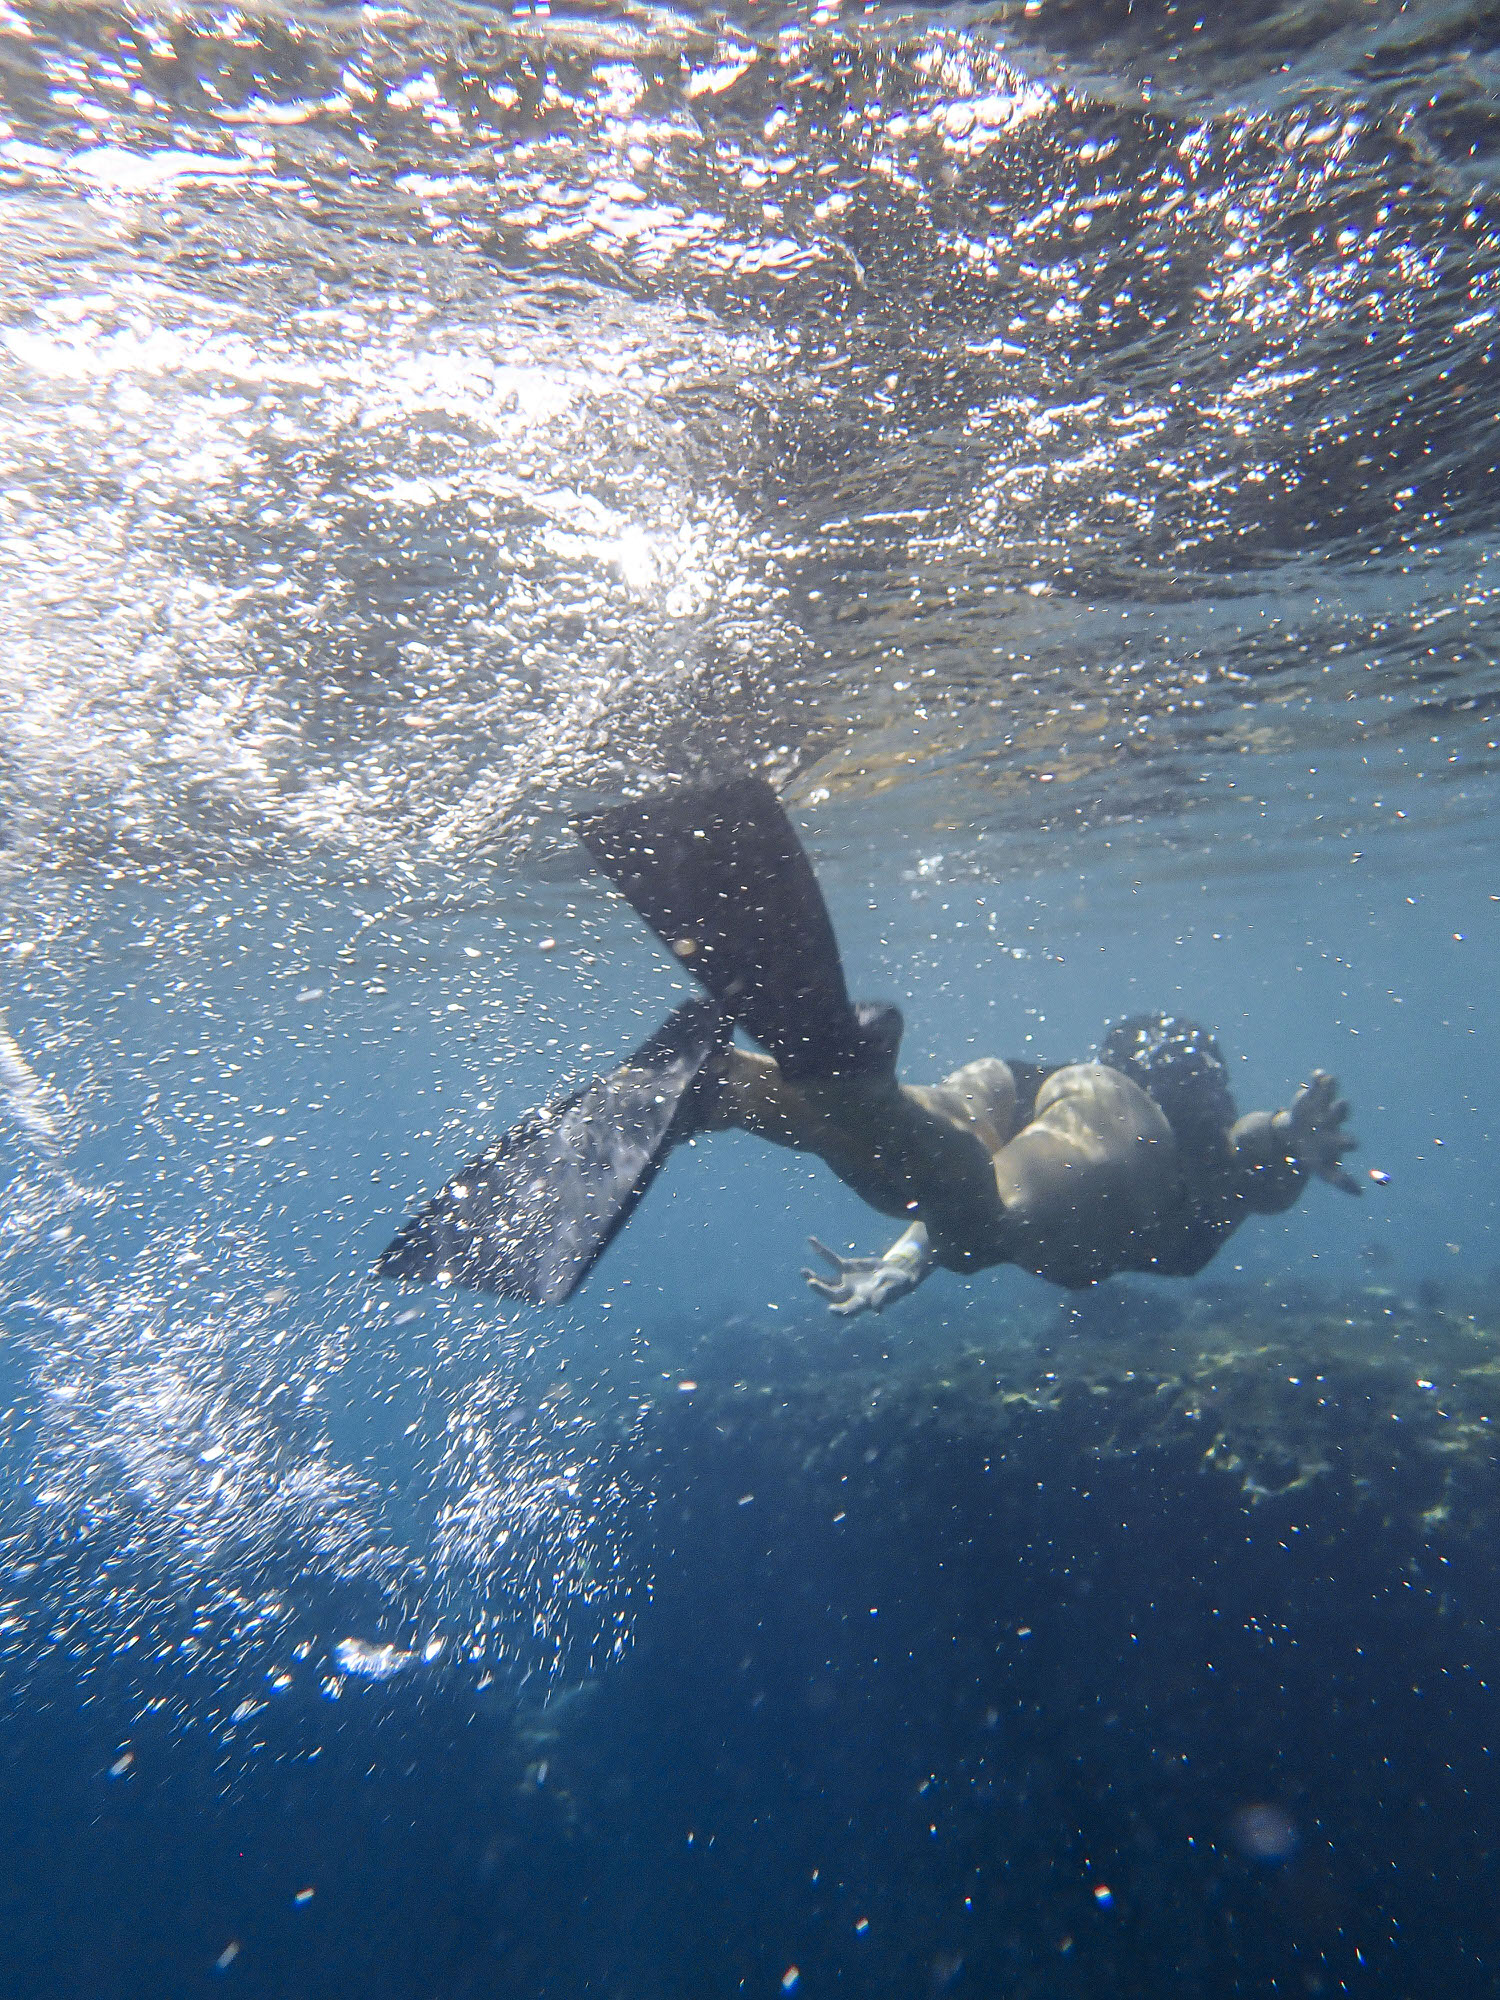 Snorkeling in the beaches of Maui